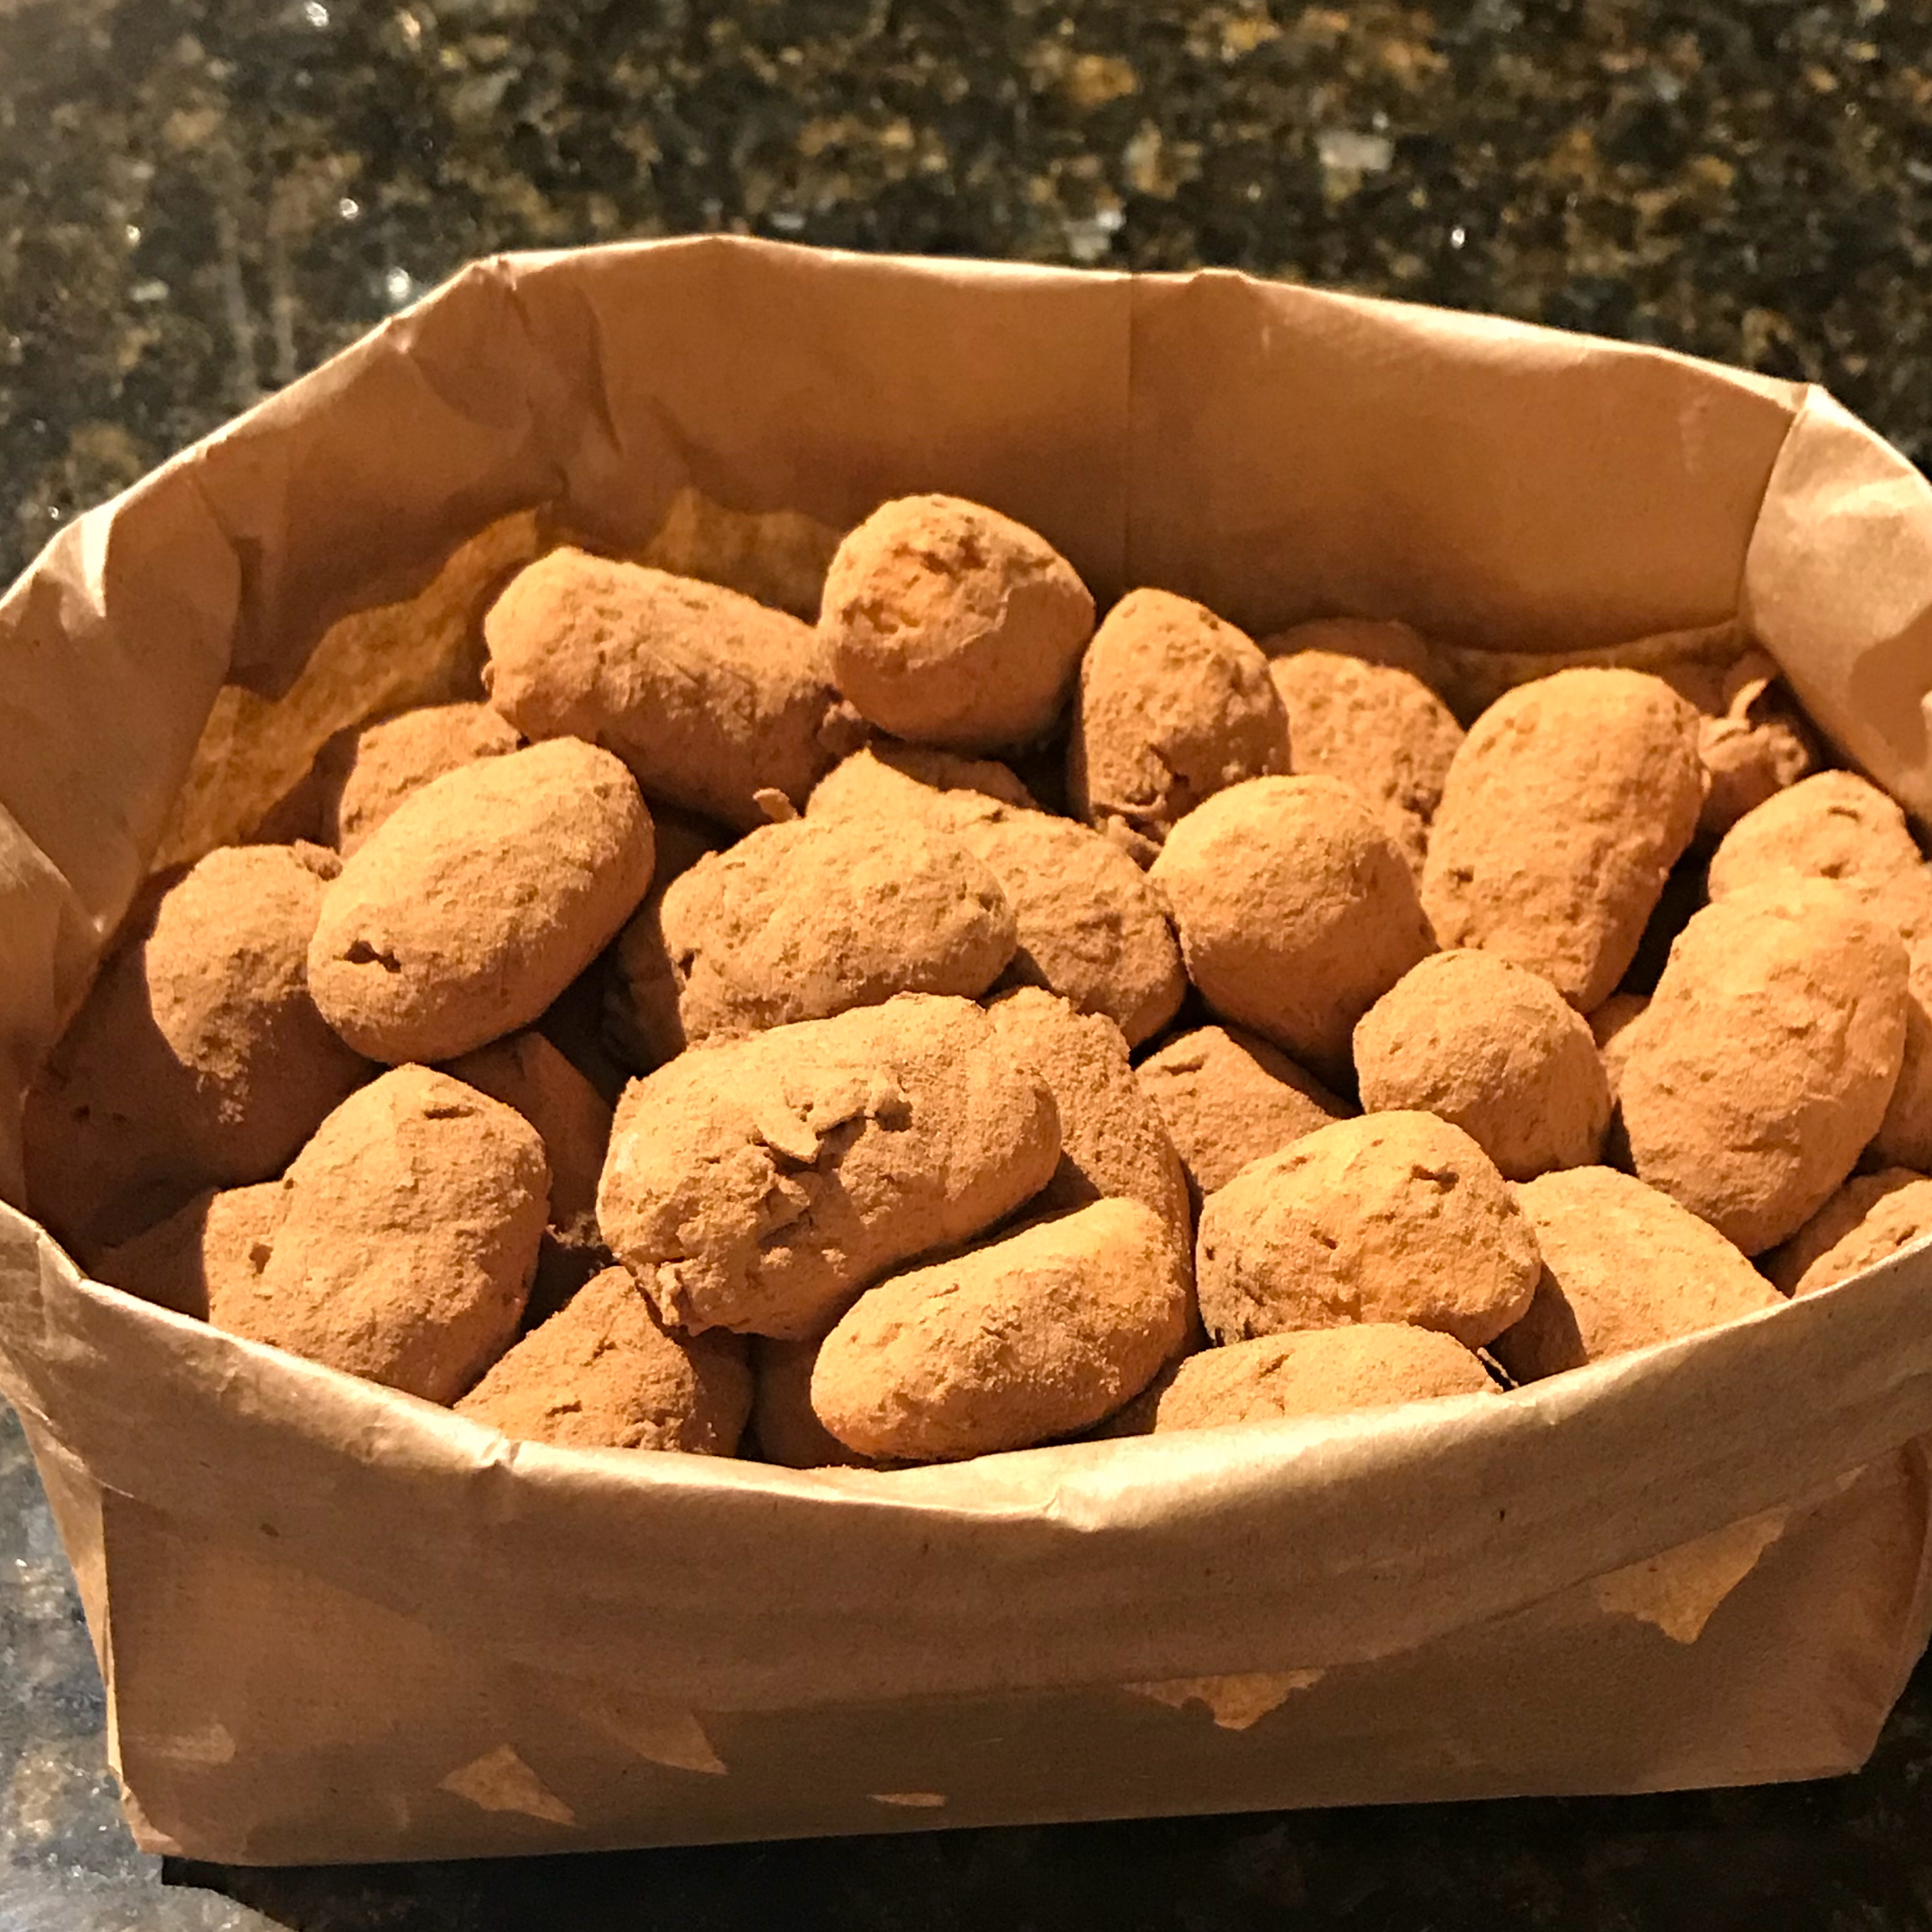 Irish Potato Candy nri0005